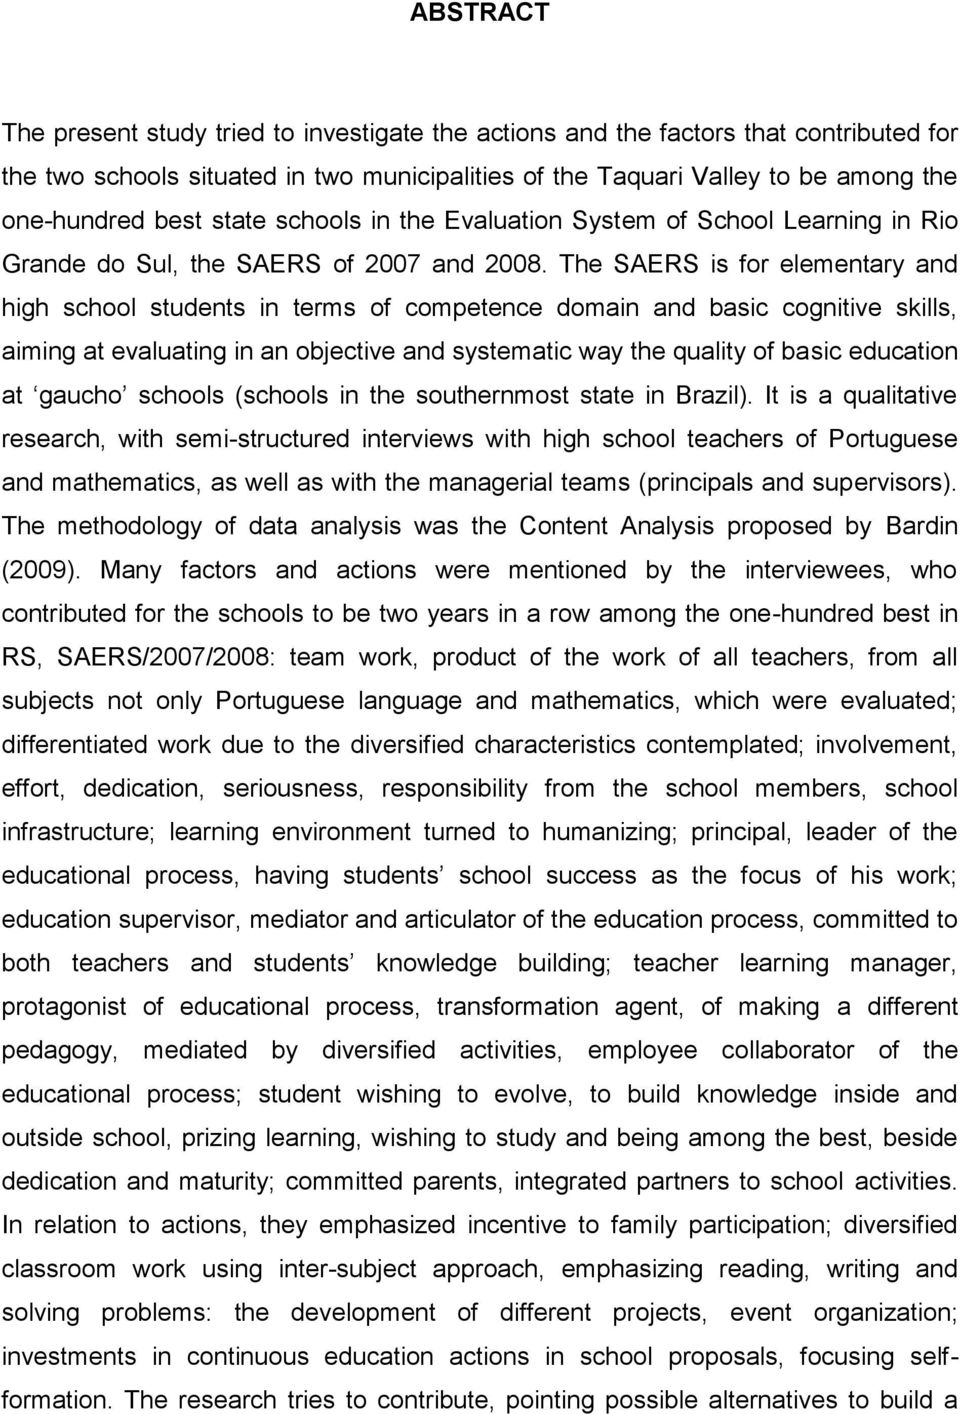 The SAERS is for elementary and high school students in terms of competence domain and basic cognitive skills, aiming at evaluating in an objective and systematic way the quality of basic education